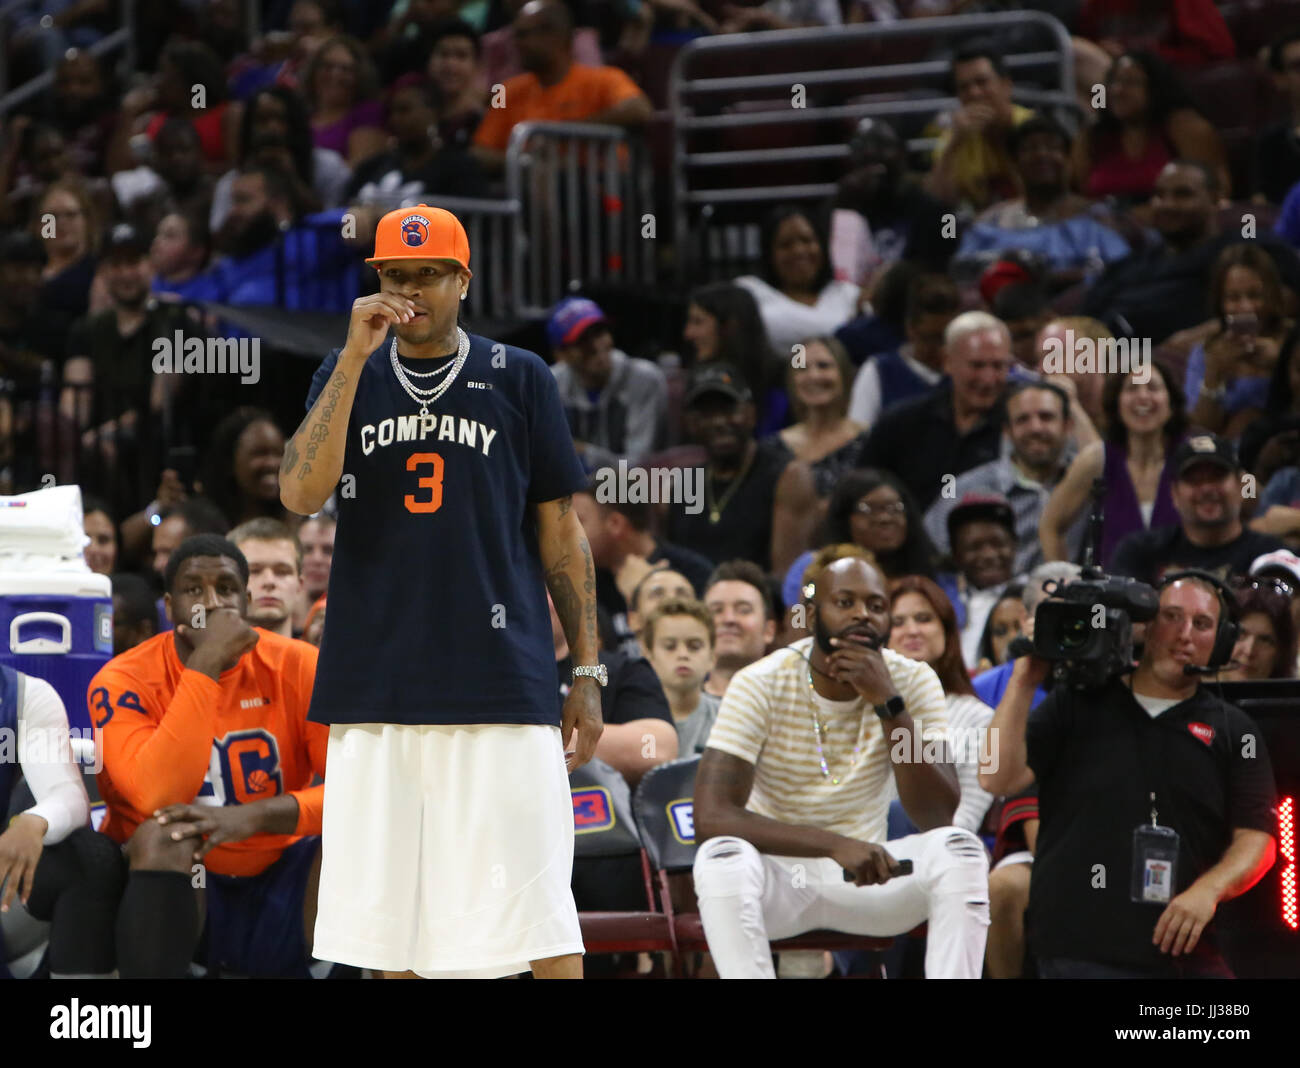 huge selection of 2939c e8929 Allen Iverson attends the Big 3 league in Phiily, PA on 7/16 ...